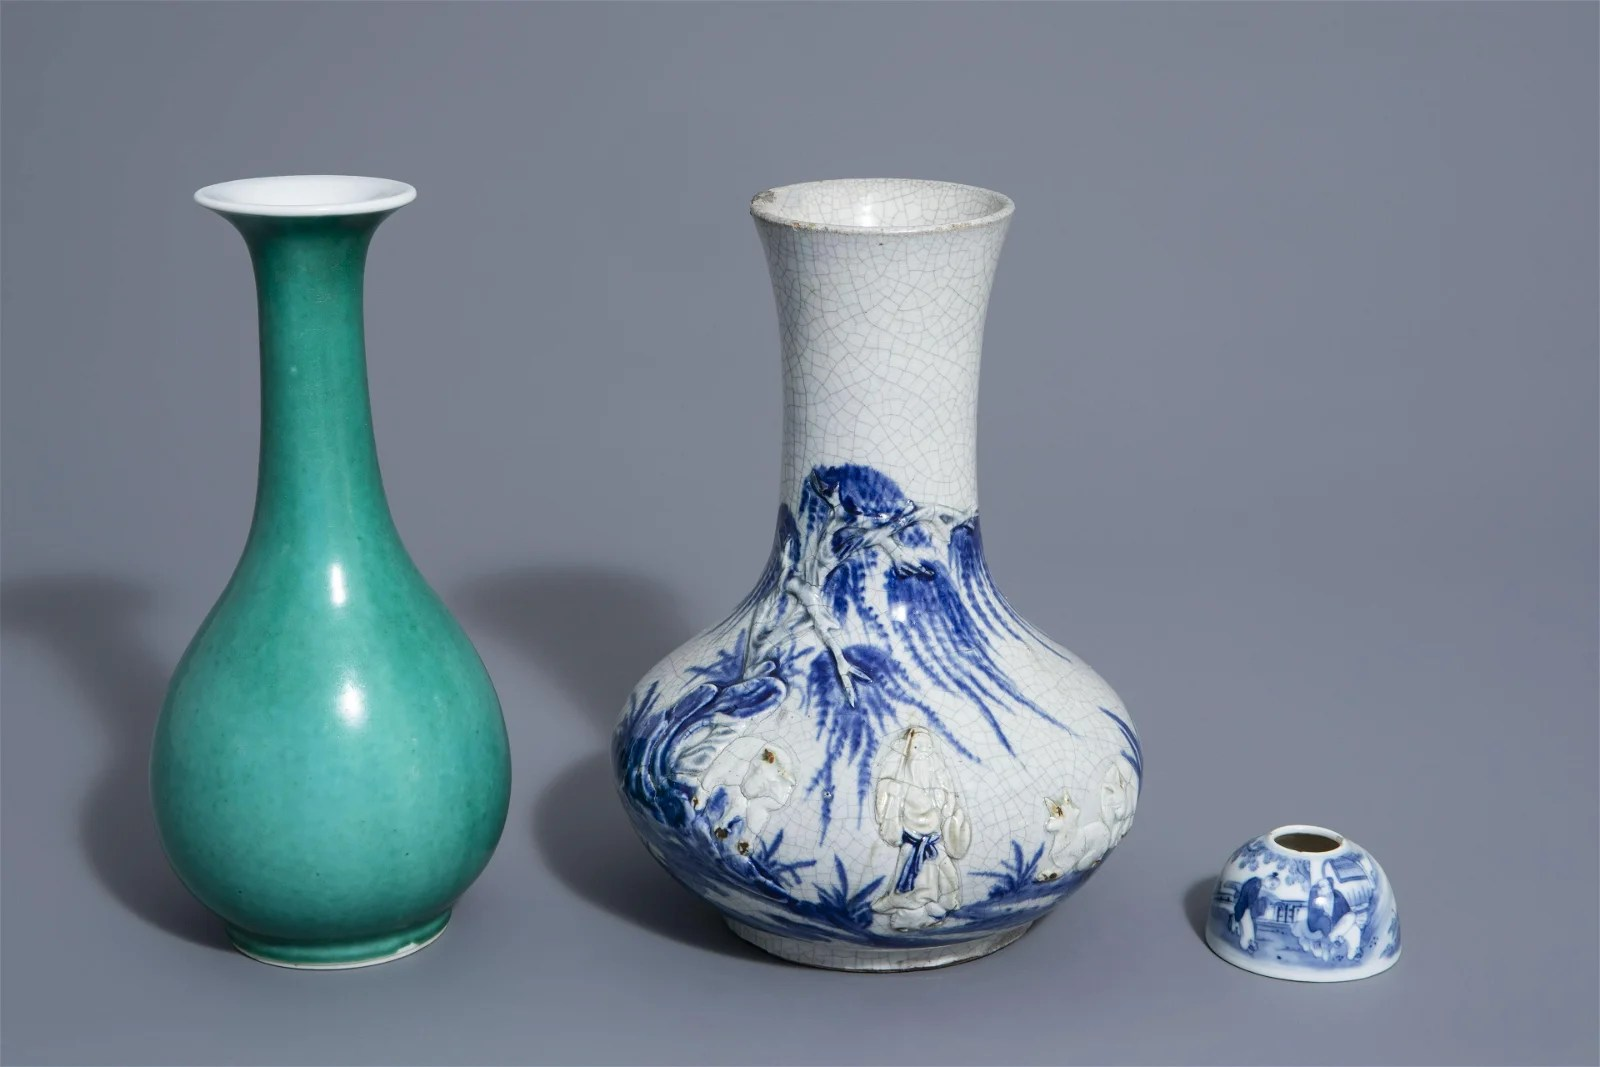 A Chinese blue and white crackle glazed vase, a